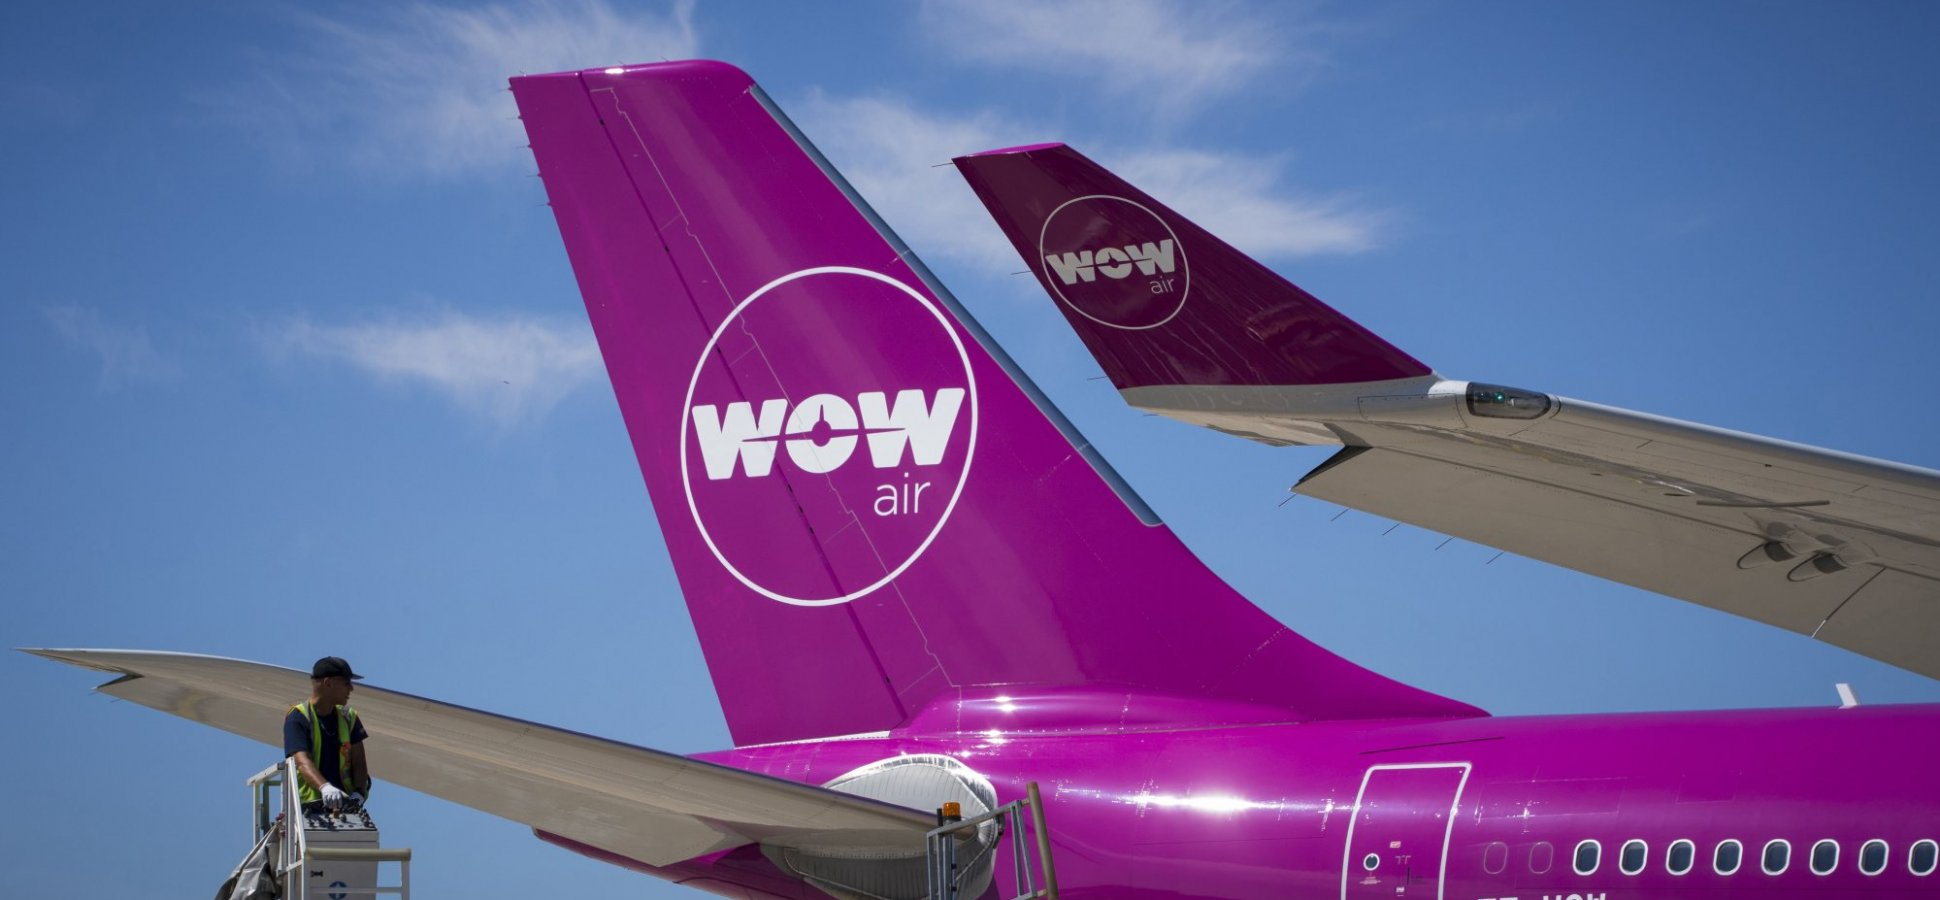 Wow Air Shamelessly Screwed Passengers. Now It's Back And Making Shockingly Audacious Promises